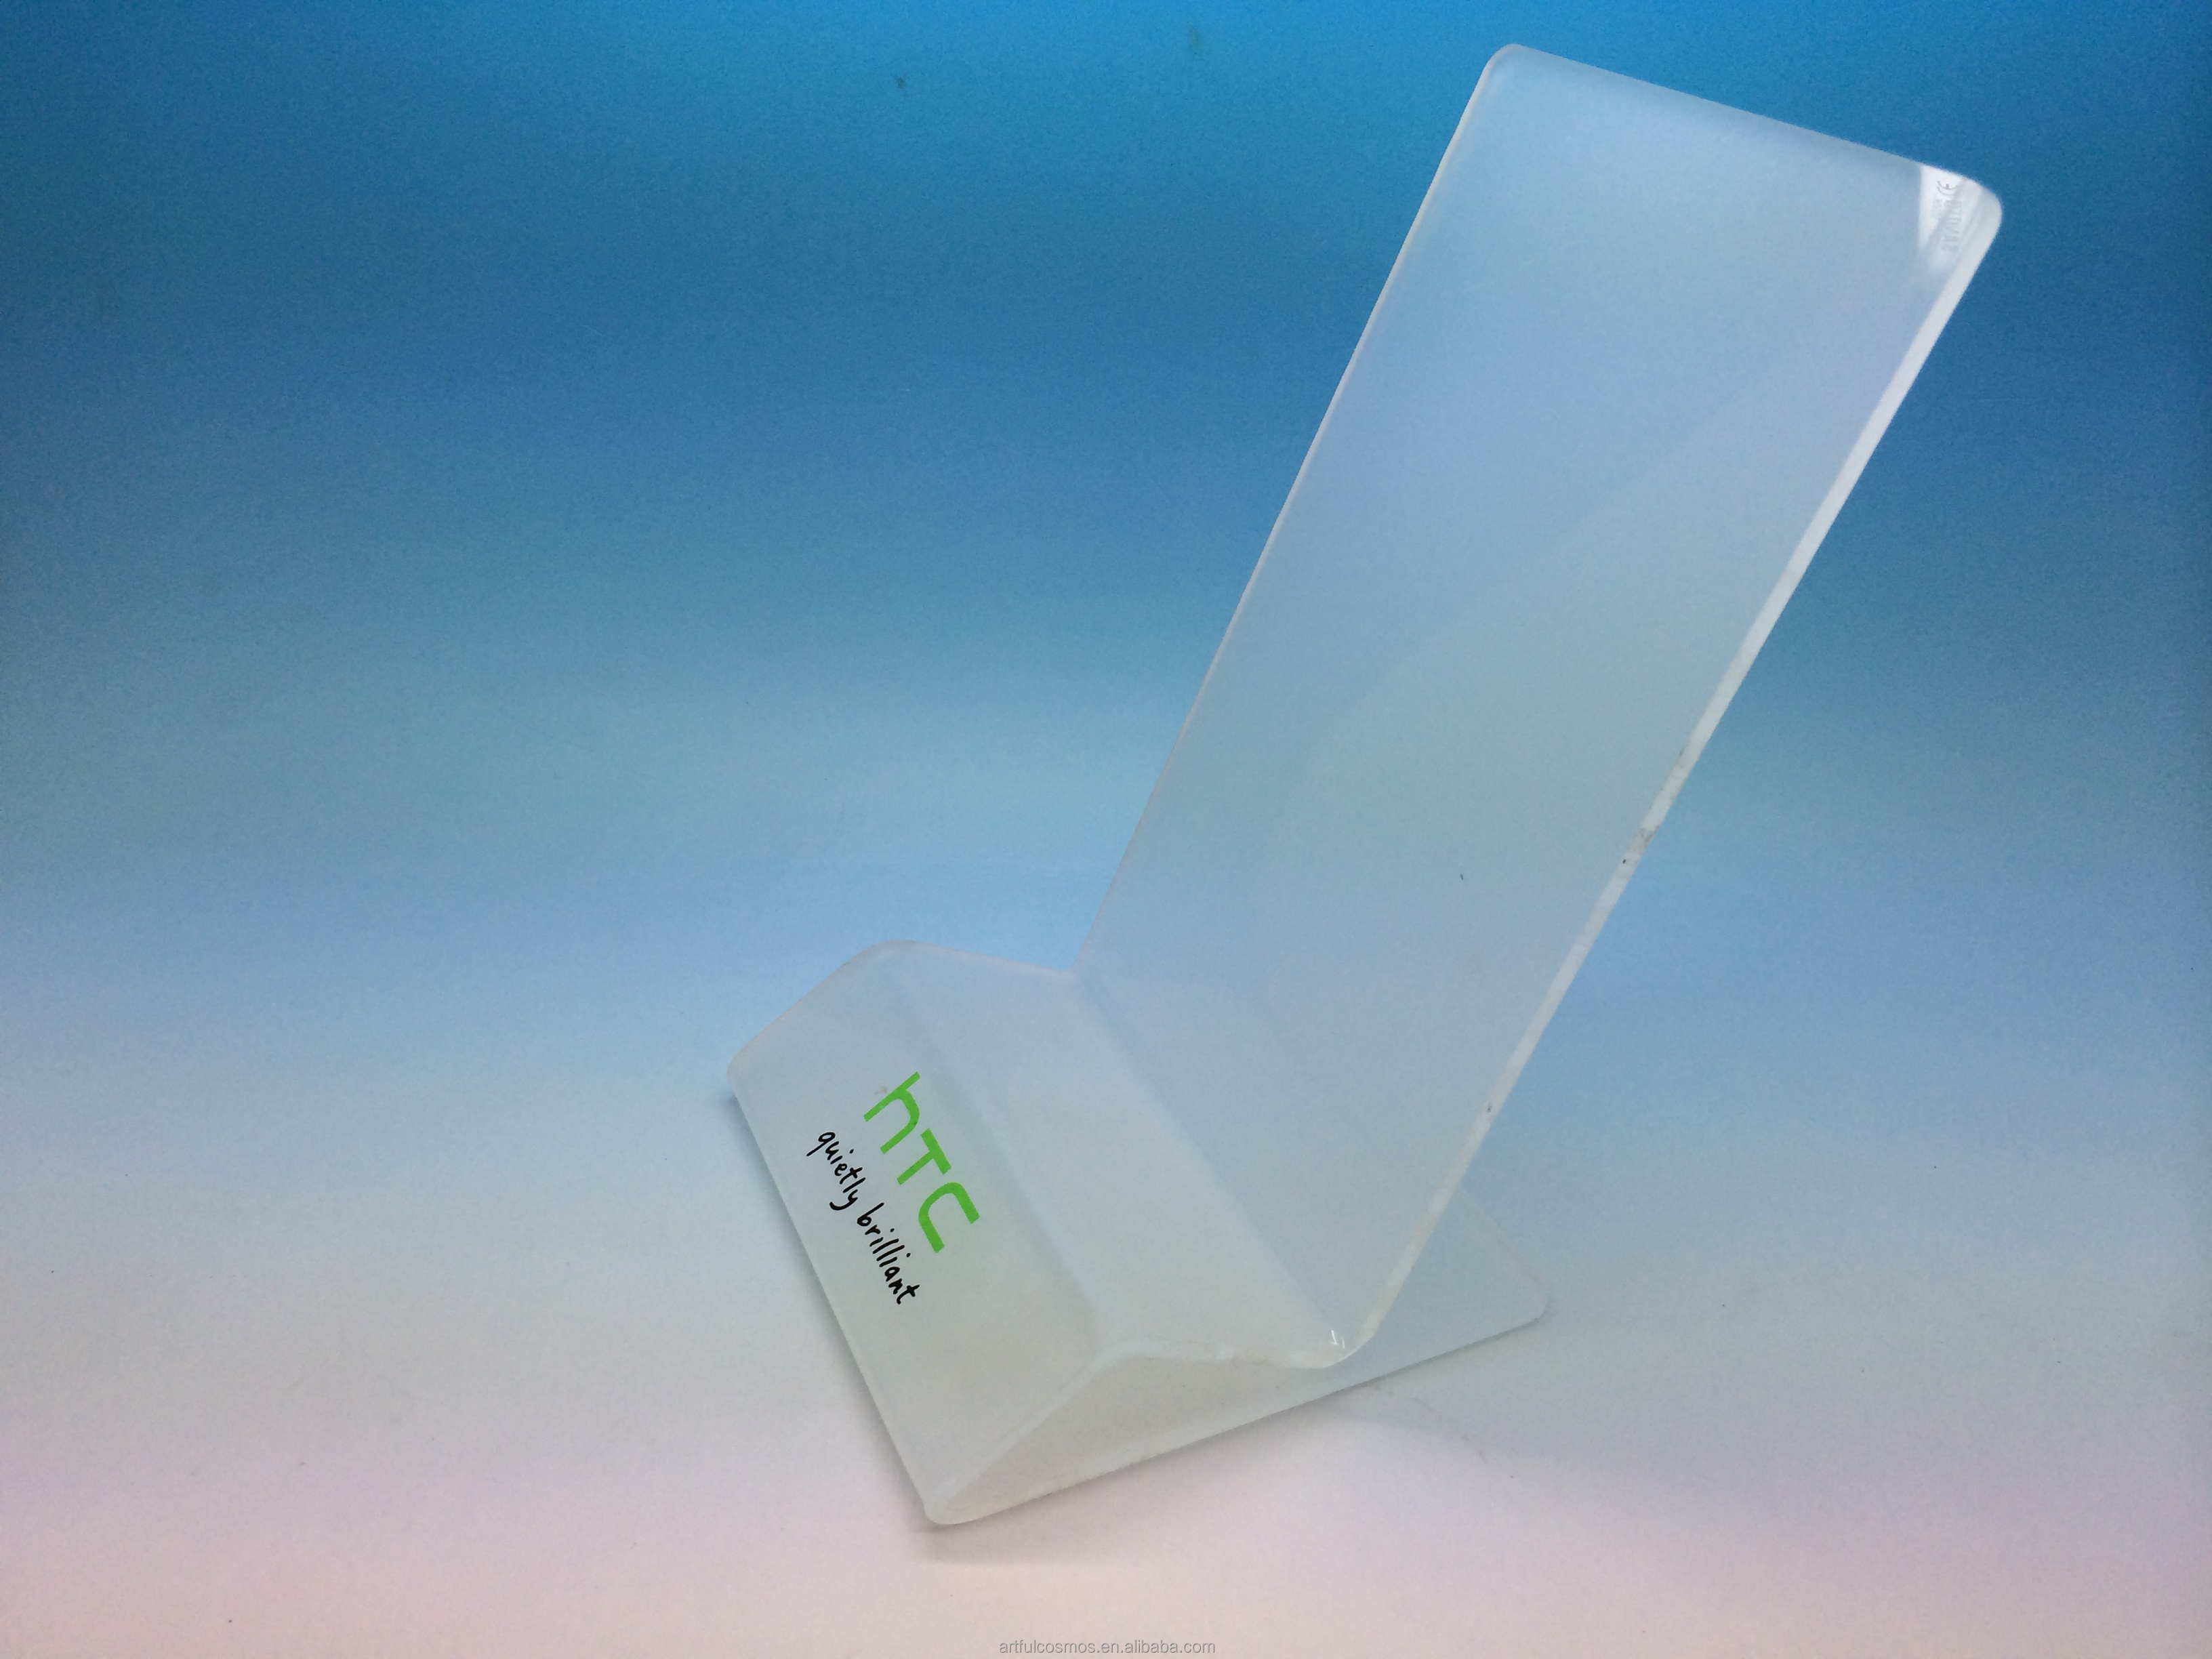 Top Quality acrylic mobile phone display stand holders